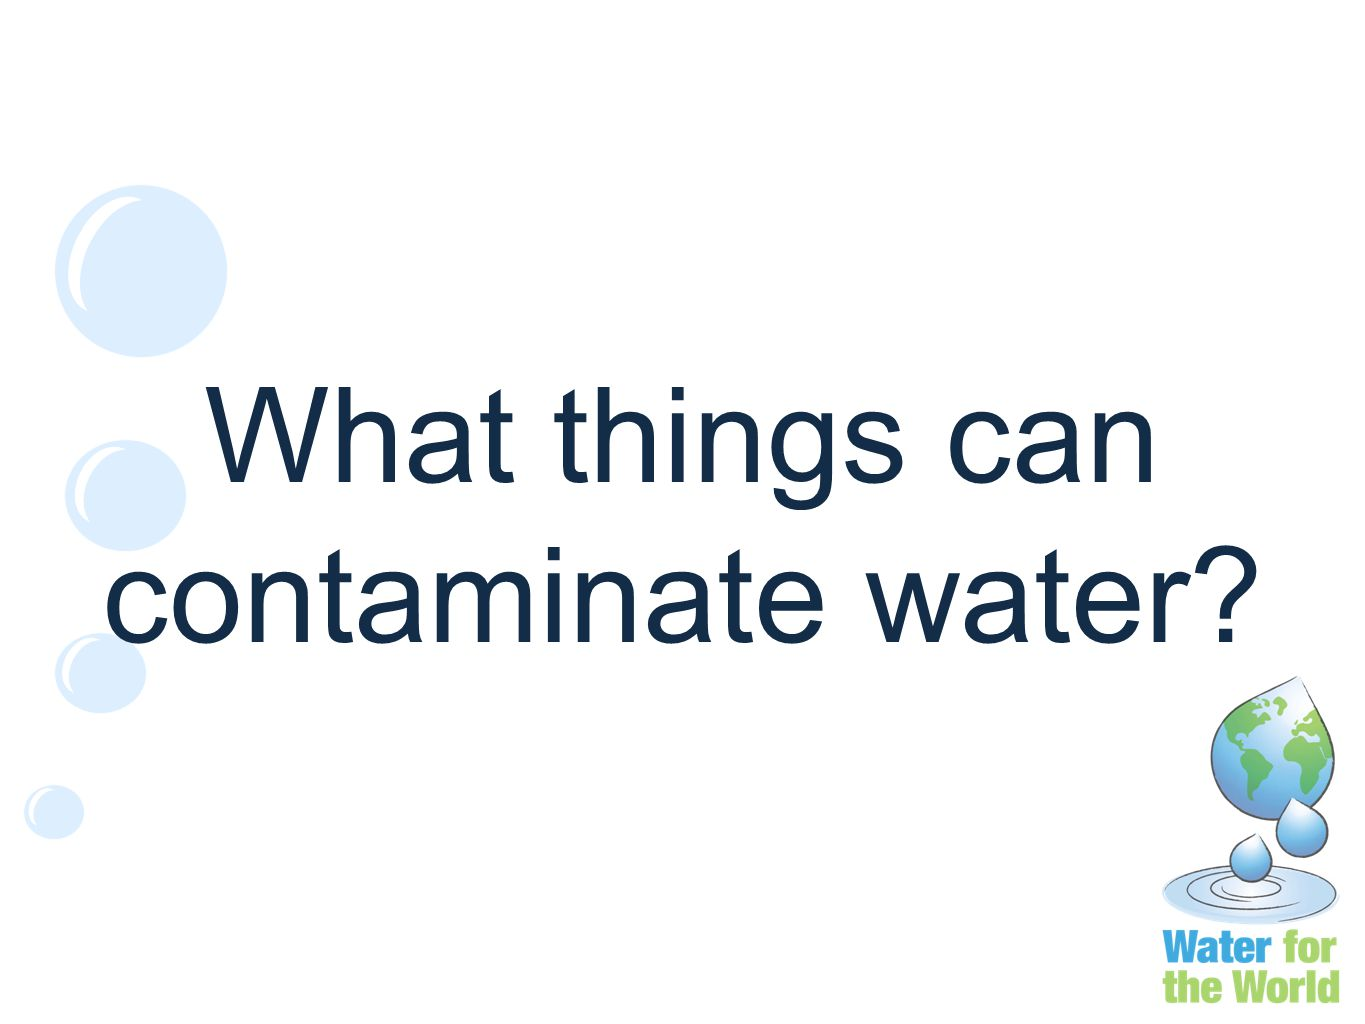 What things can contaminate water